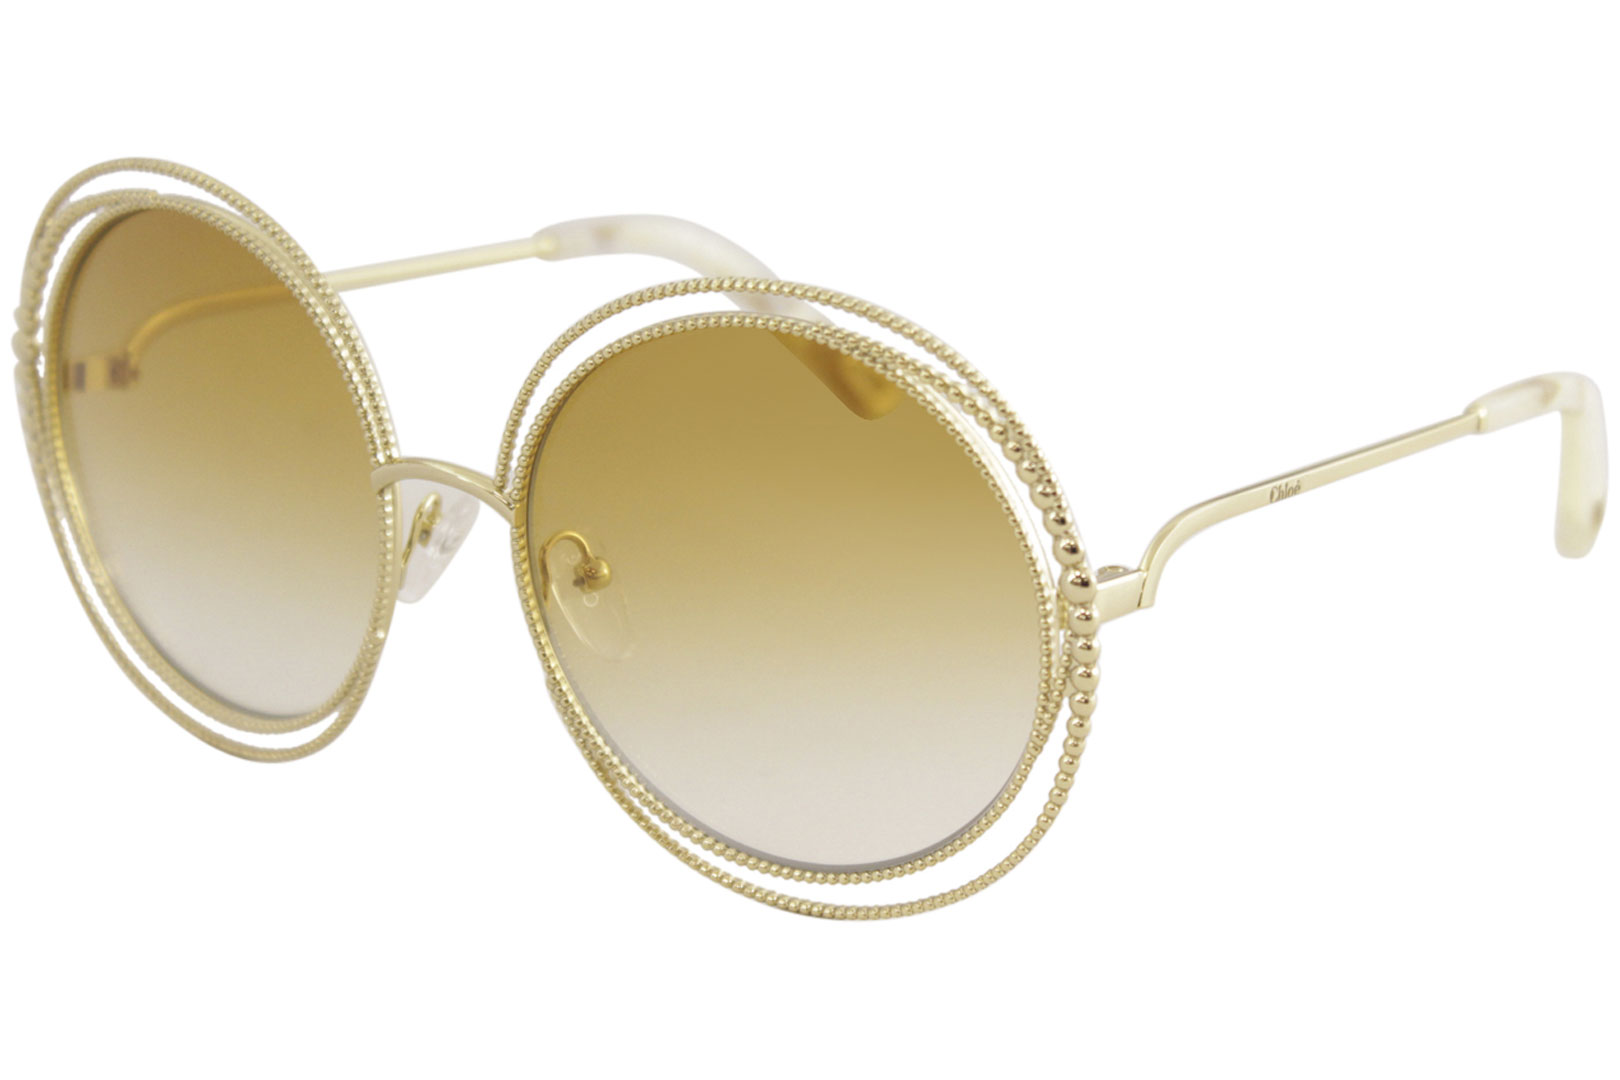 021274de35b0 Chloe Women s CE114SC CE 114 SC 837 Gold Fashion Round Sunglasses ...